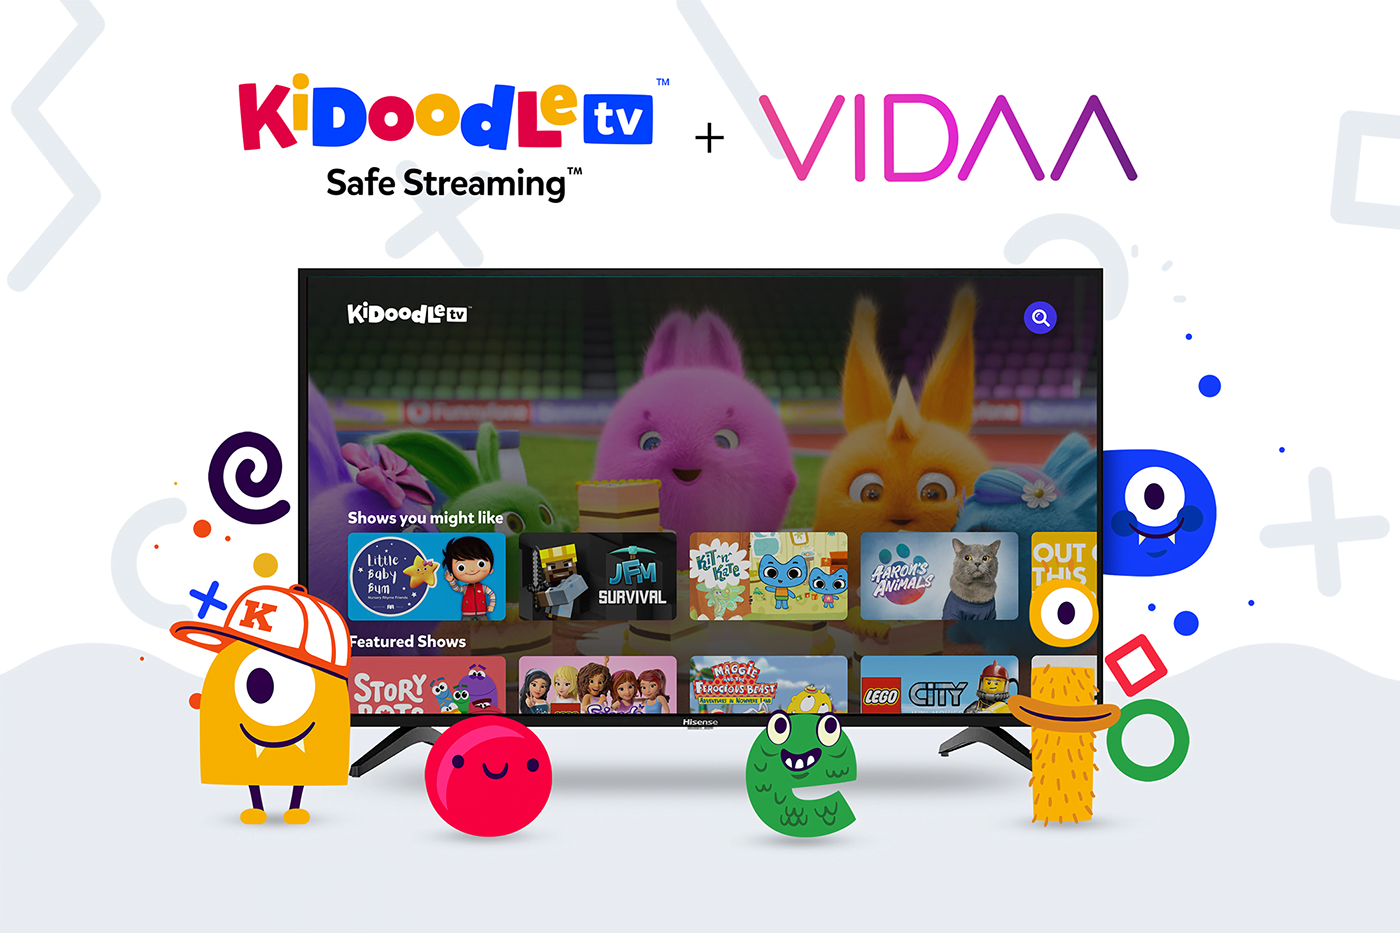 Kidoodle.TV is Coming Soon to New VIDAA-Enabled Hisense Devices